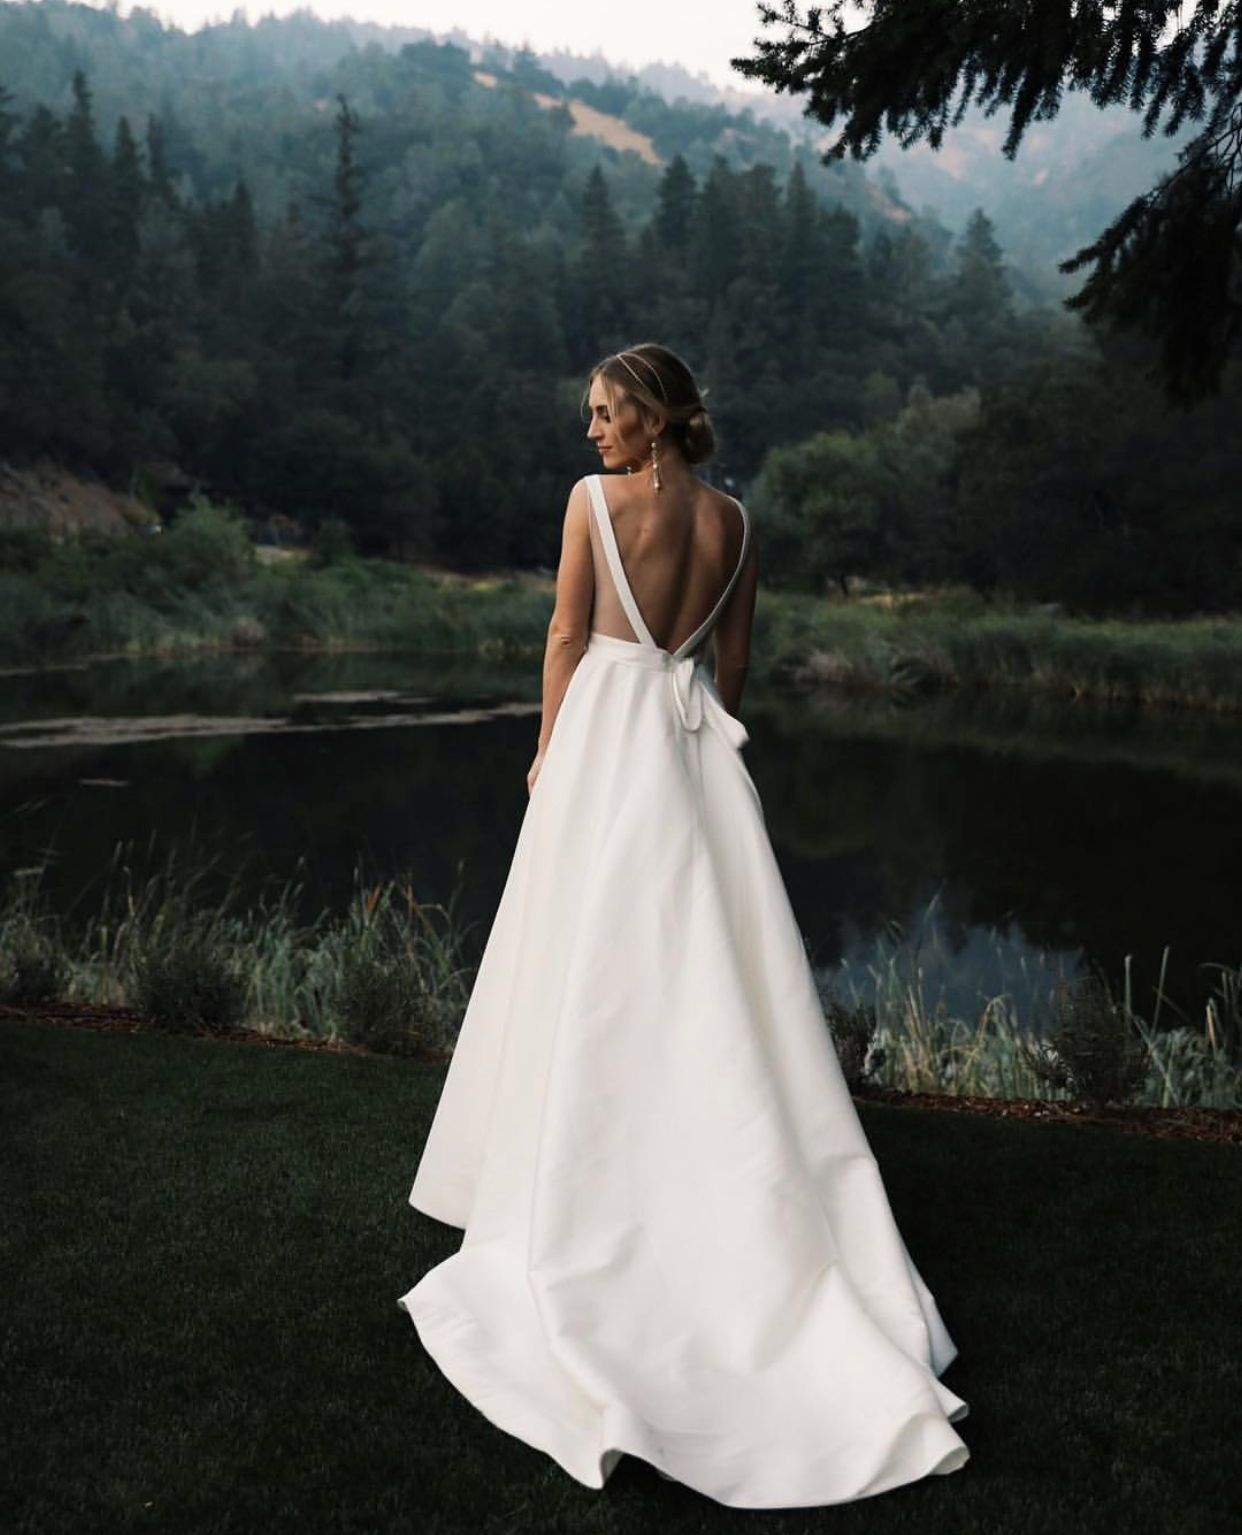 Flirty And Fabulous Introducing The Octavia Gown The Bhldn X Jenny Yoo Bridal Collection Is Ruffle Bridal Gown Wedding Dress Sash Wedding Dress With Pockets,Nice Long Dresses For Weddings